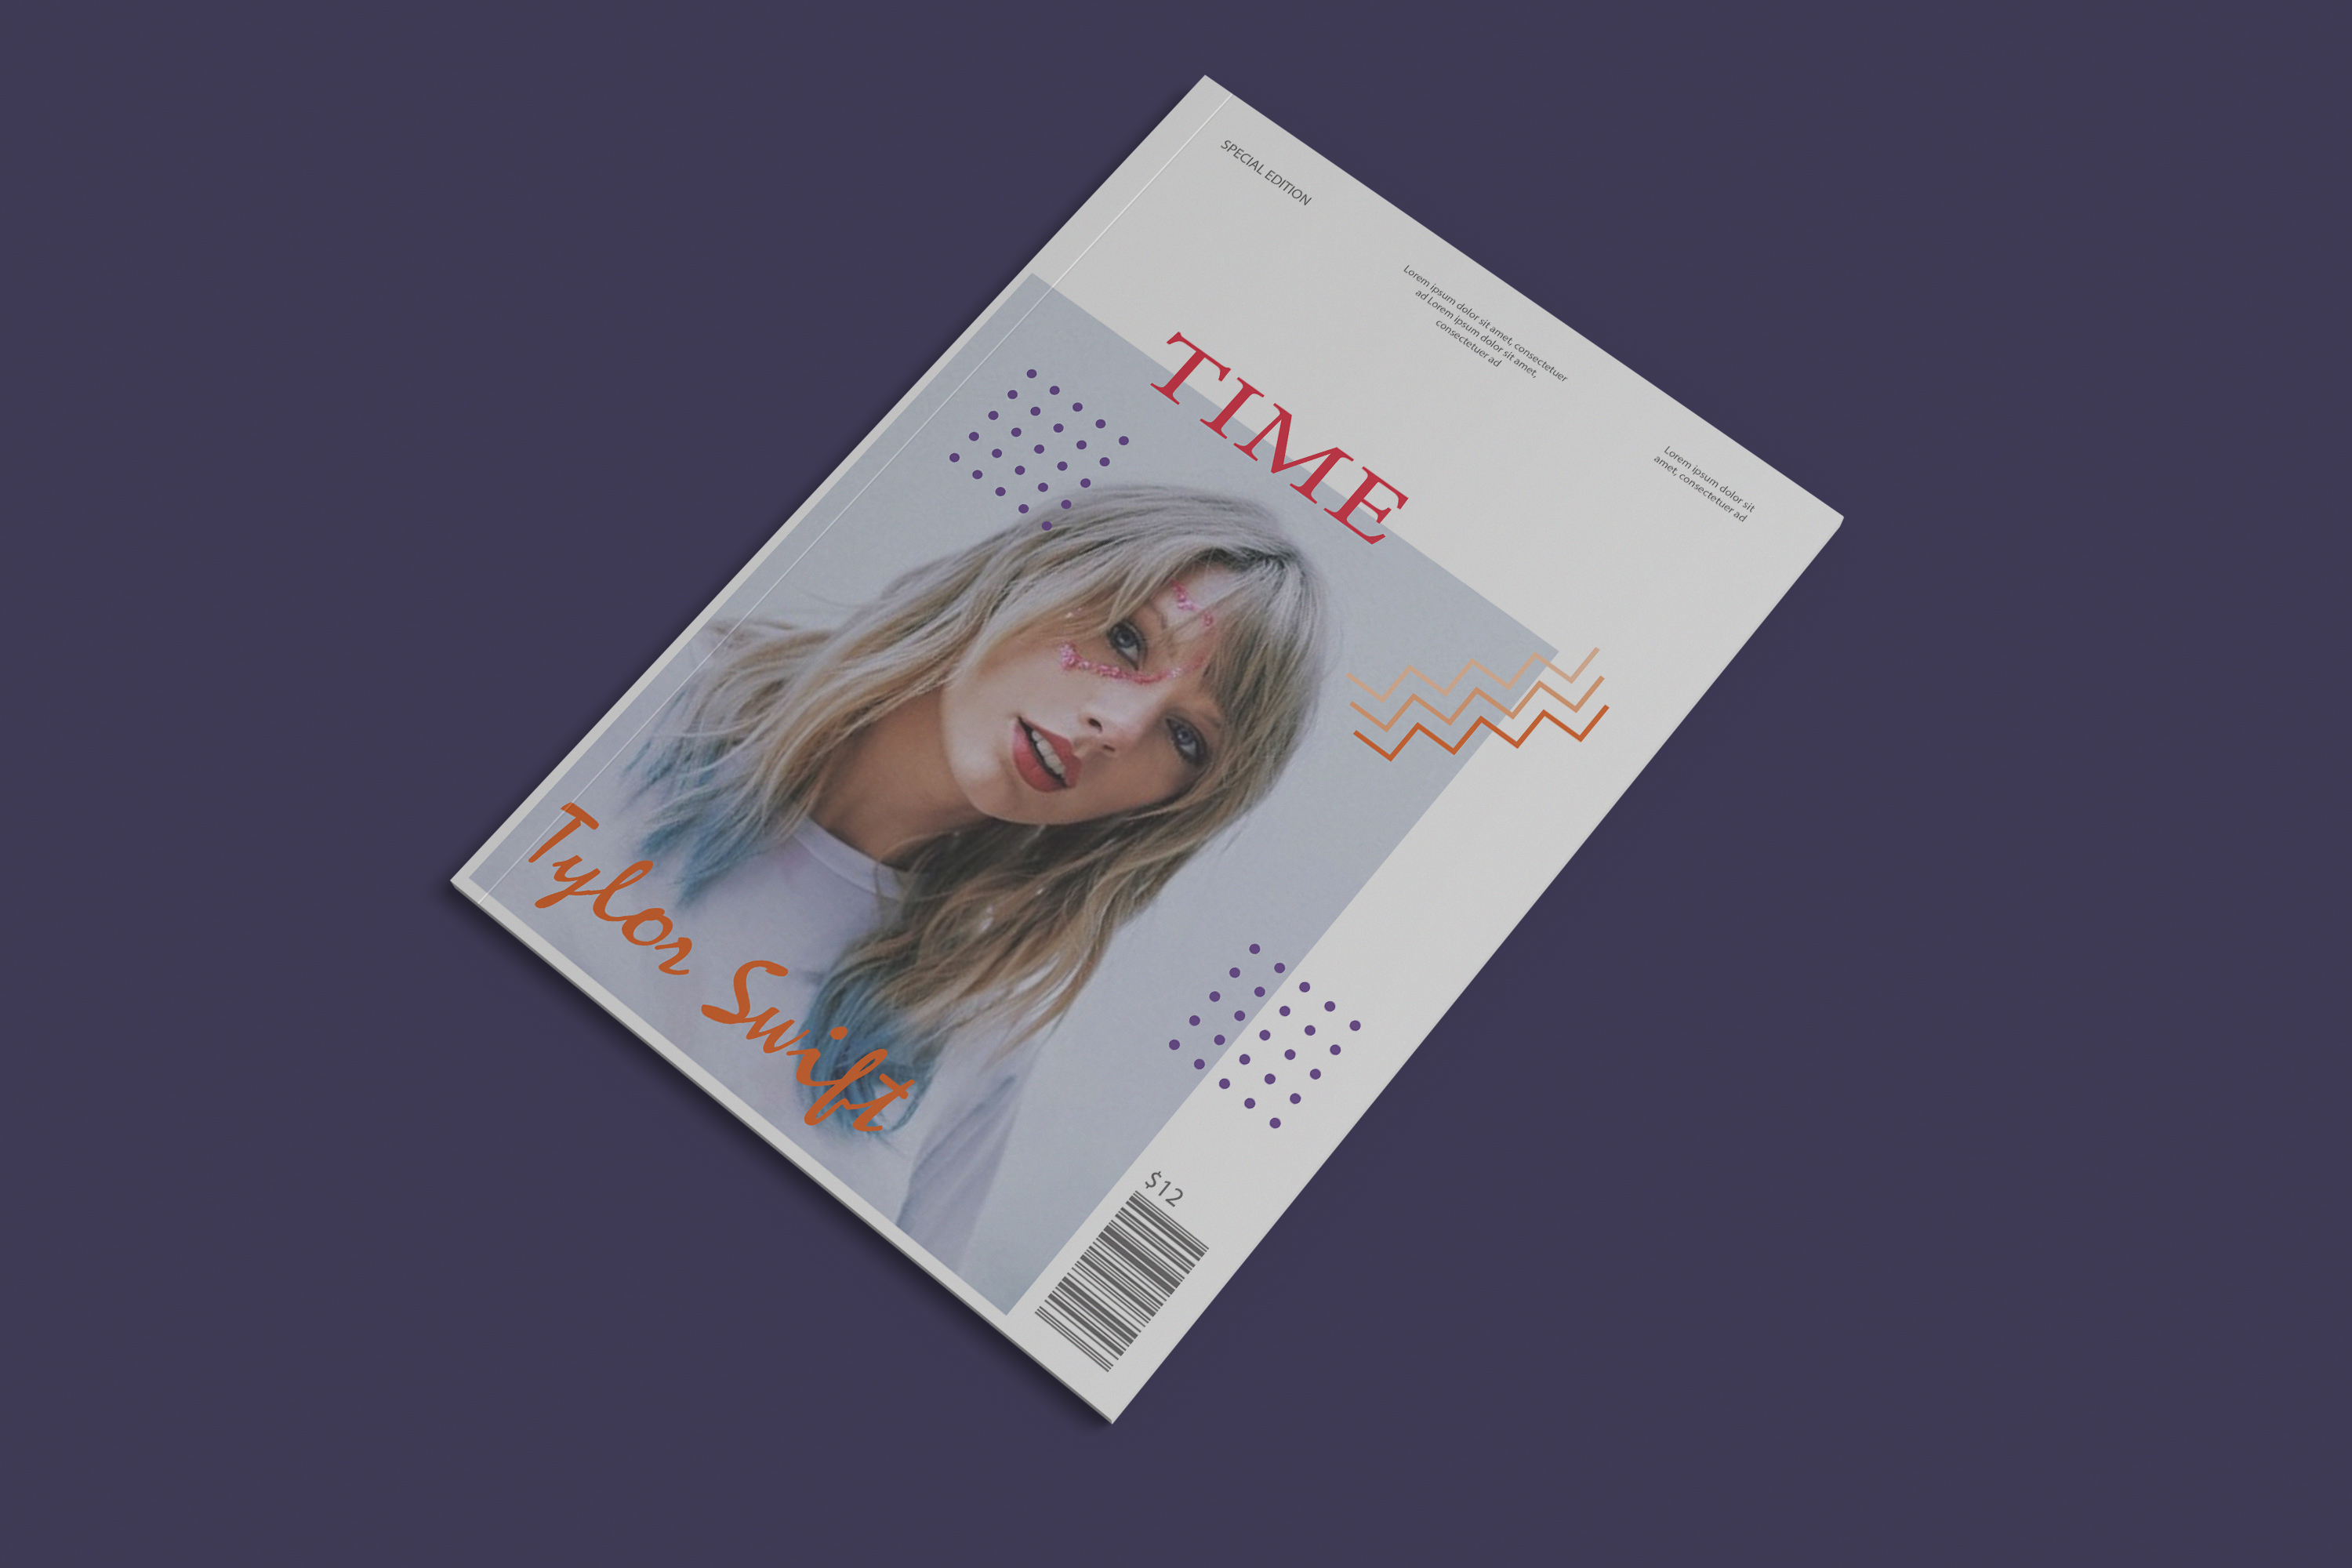 I will design an amazing magazine cover for you